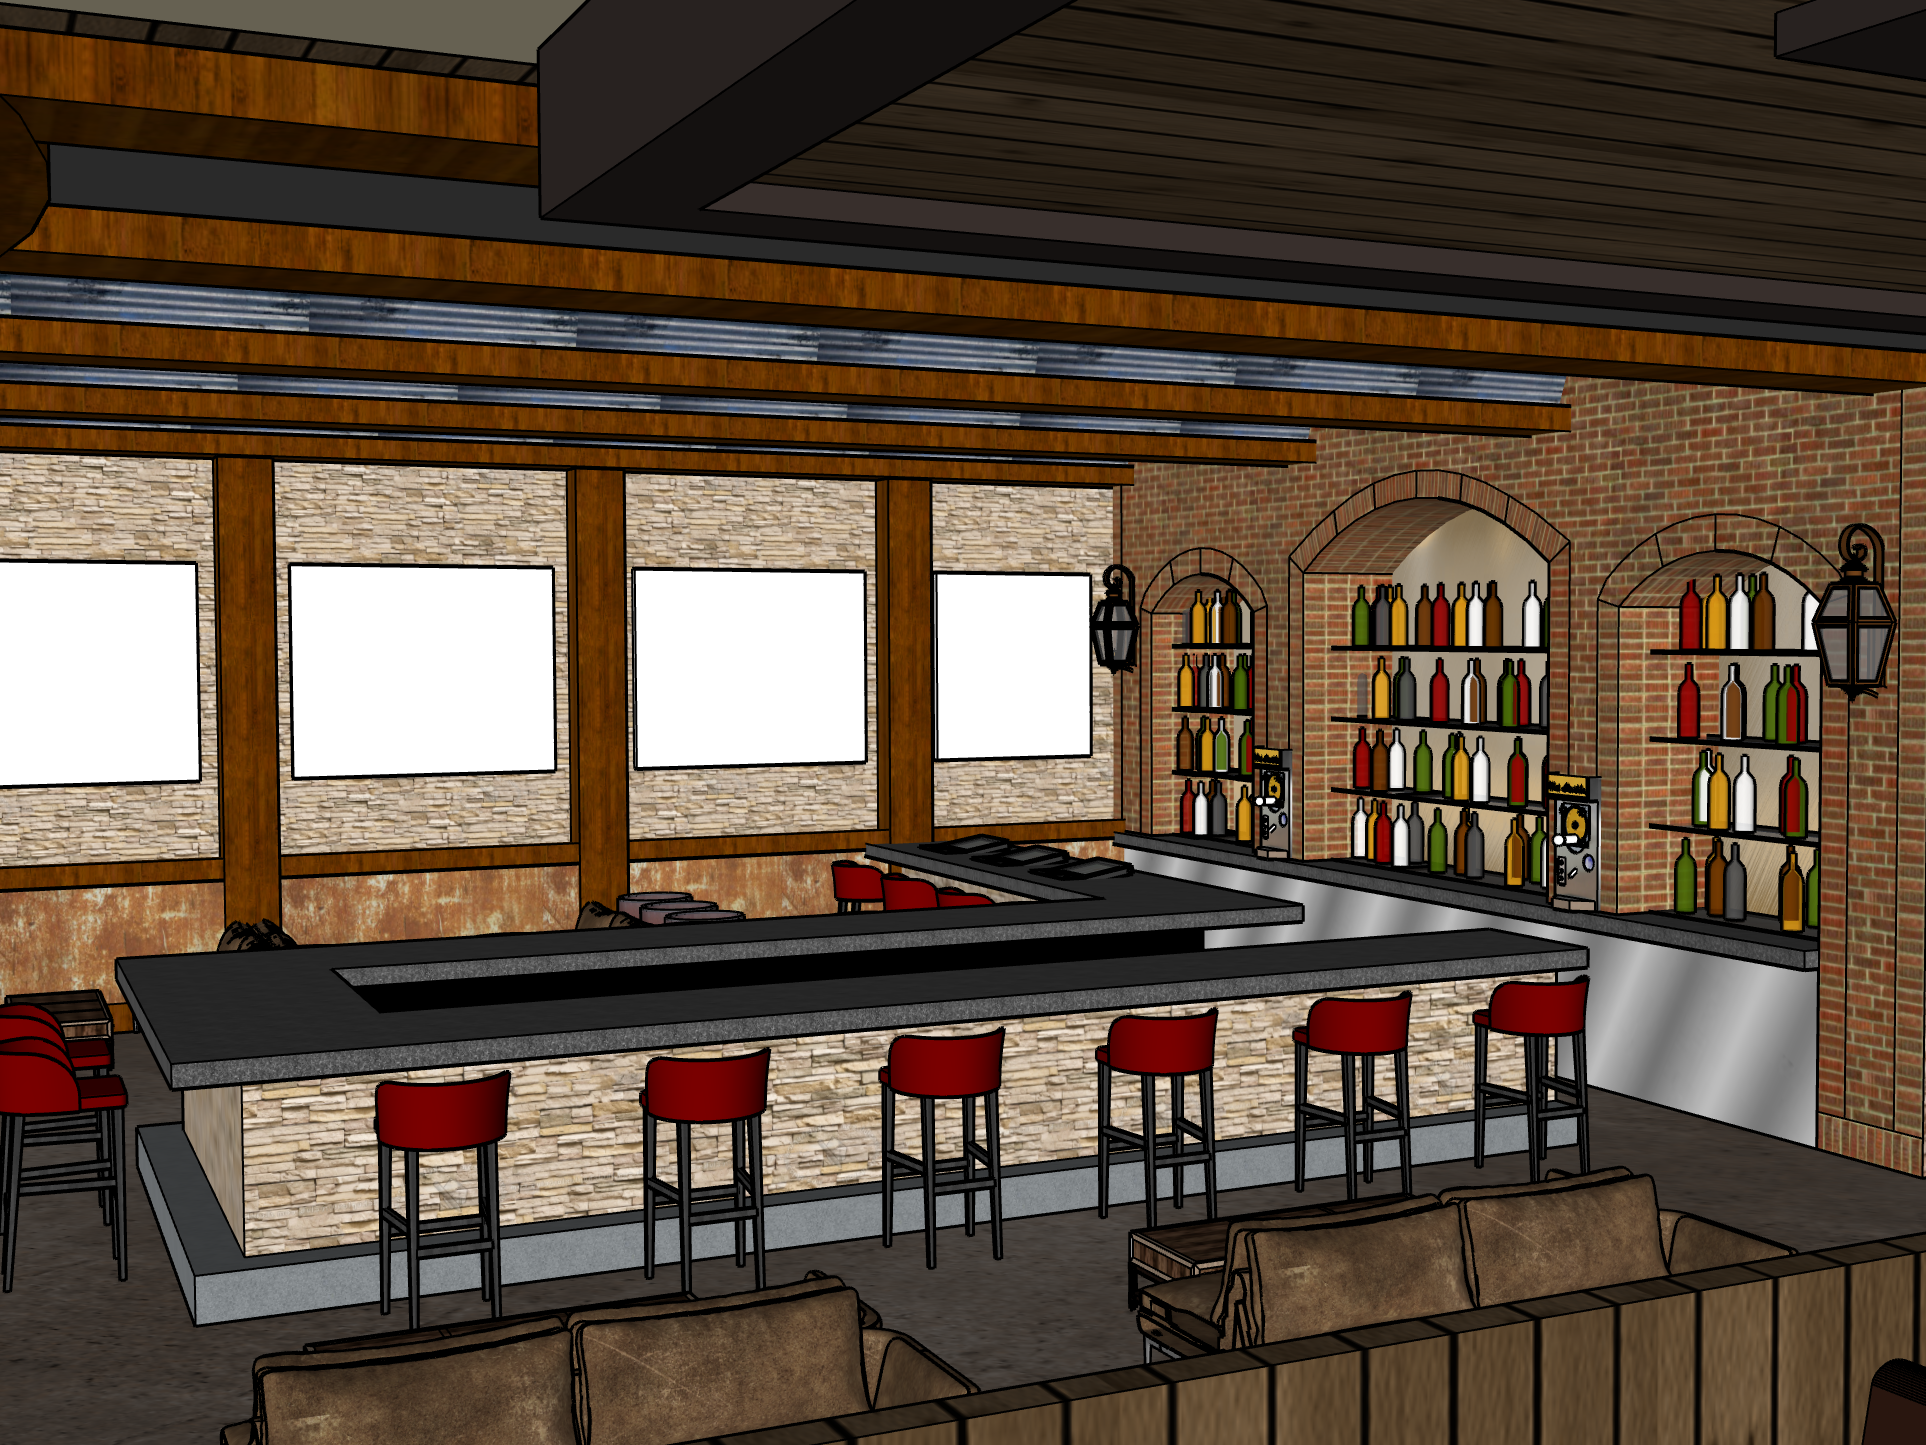 A rendering of the space that will be the new George Lopez's Chingon Kitchen, which is scheduled to open May 3 at Vee Quiva Hotel & Casino.